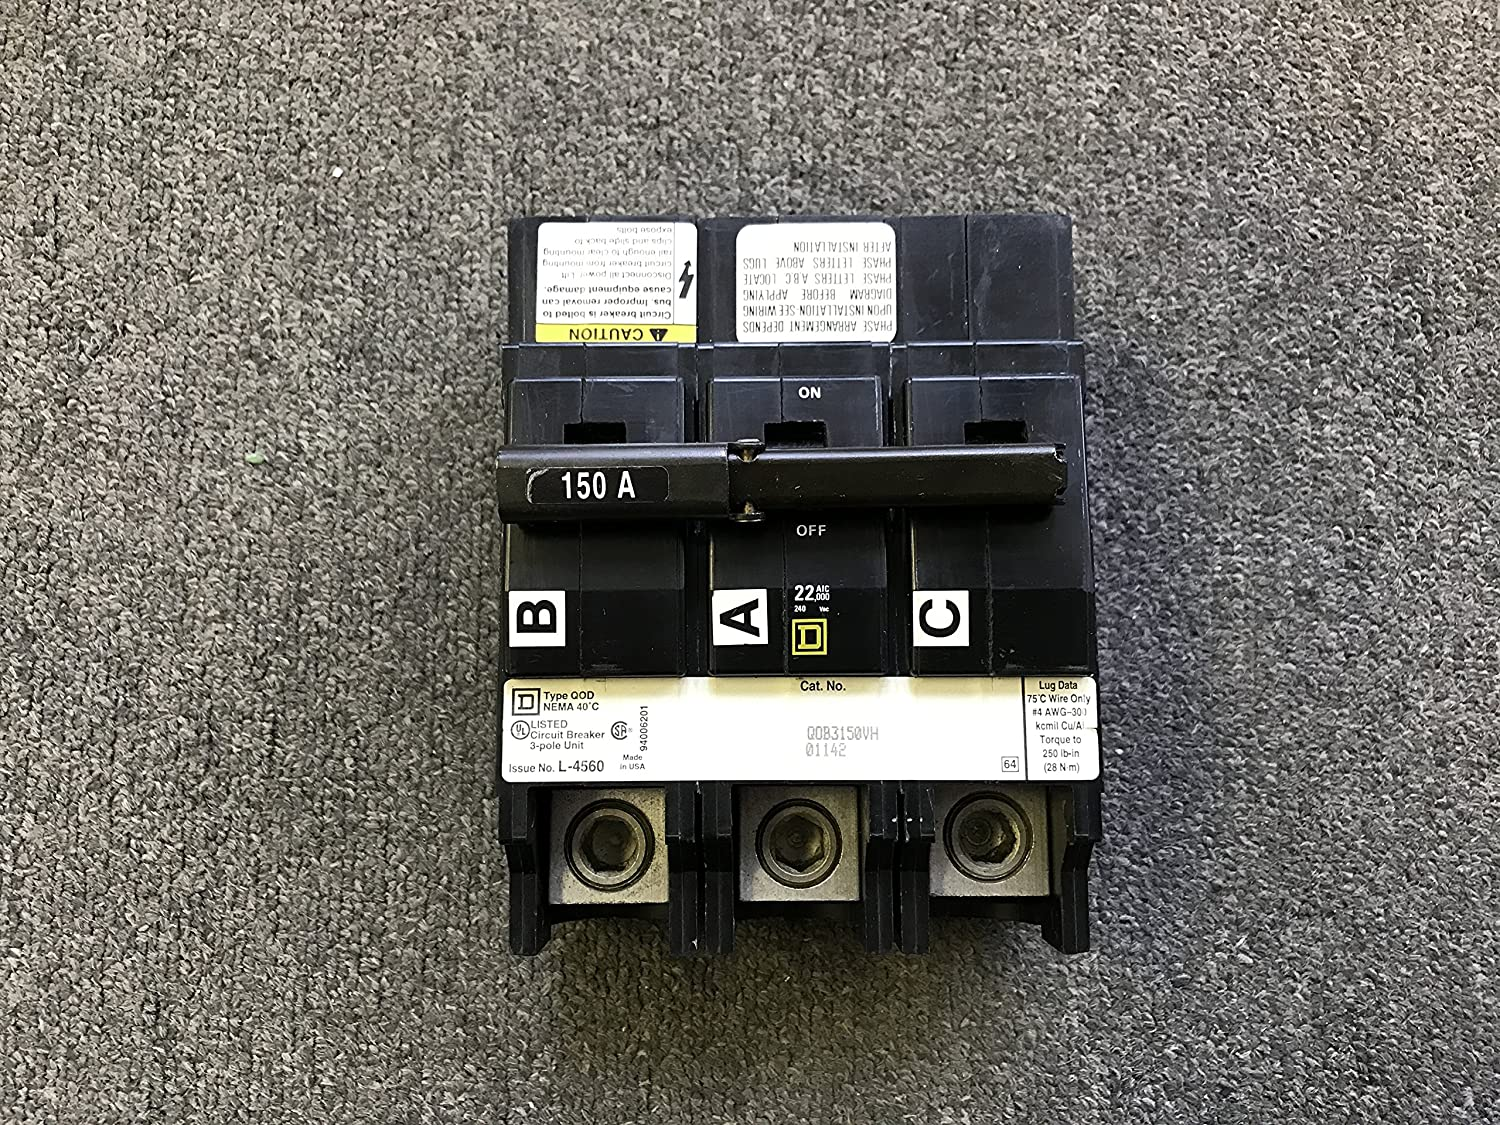 Square D By Schneider Electric Qob3150vh Miniature Circuit Breaker Breakers Load Centers Fuses 240v 150a Home Improvement